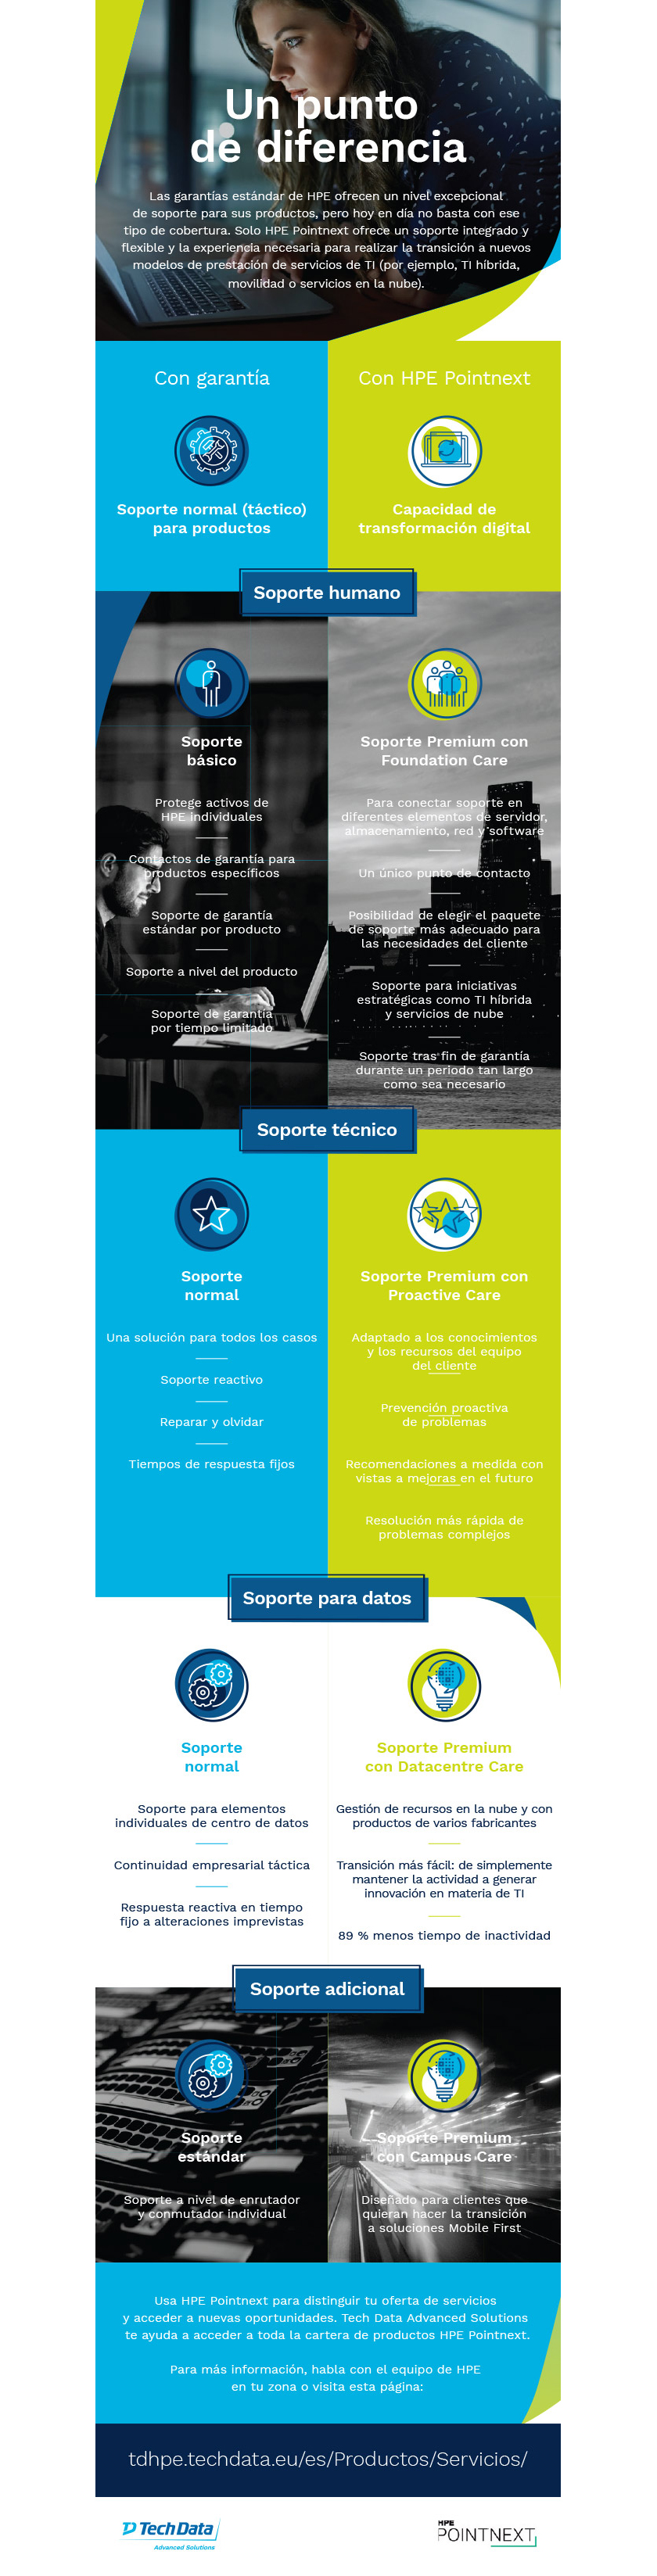 Infografia_Pointnext-Point-of-Difference_SPANISH